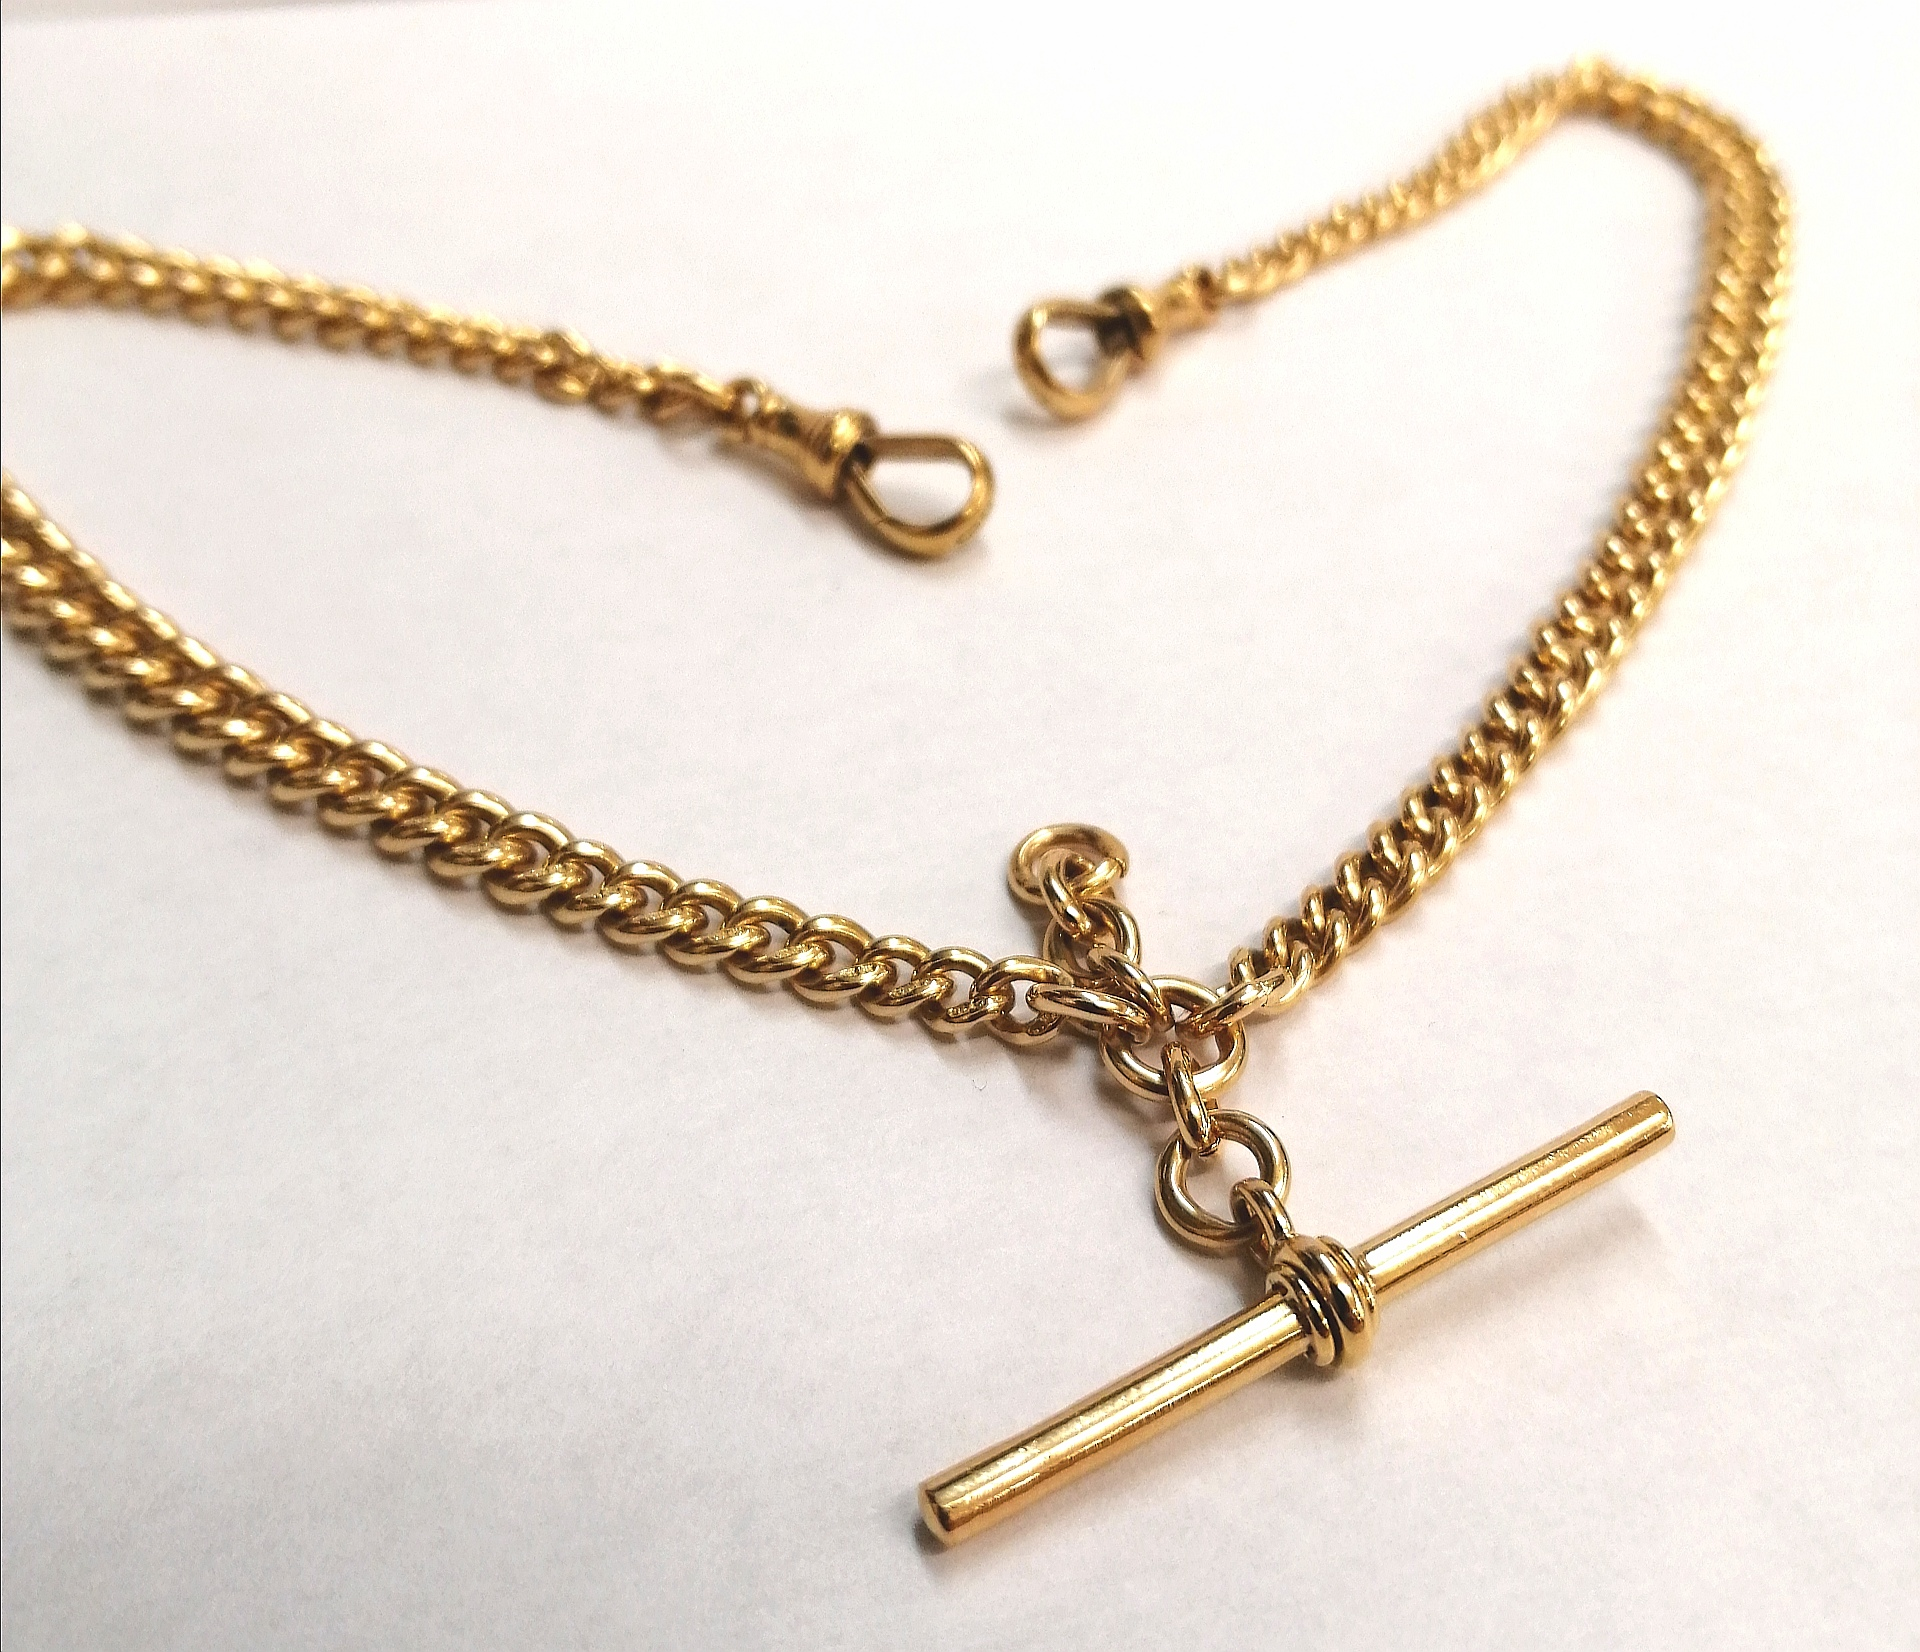 Edwardian 18ct Gold Graduated Curb Link Albert Chain